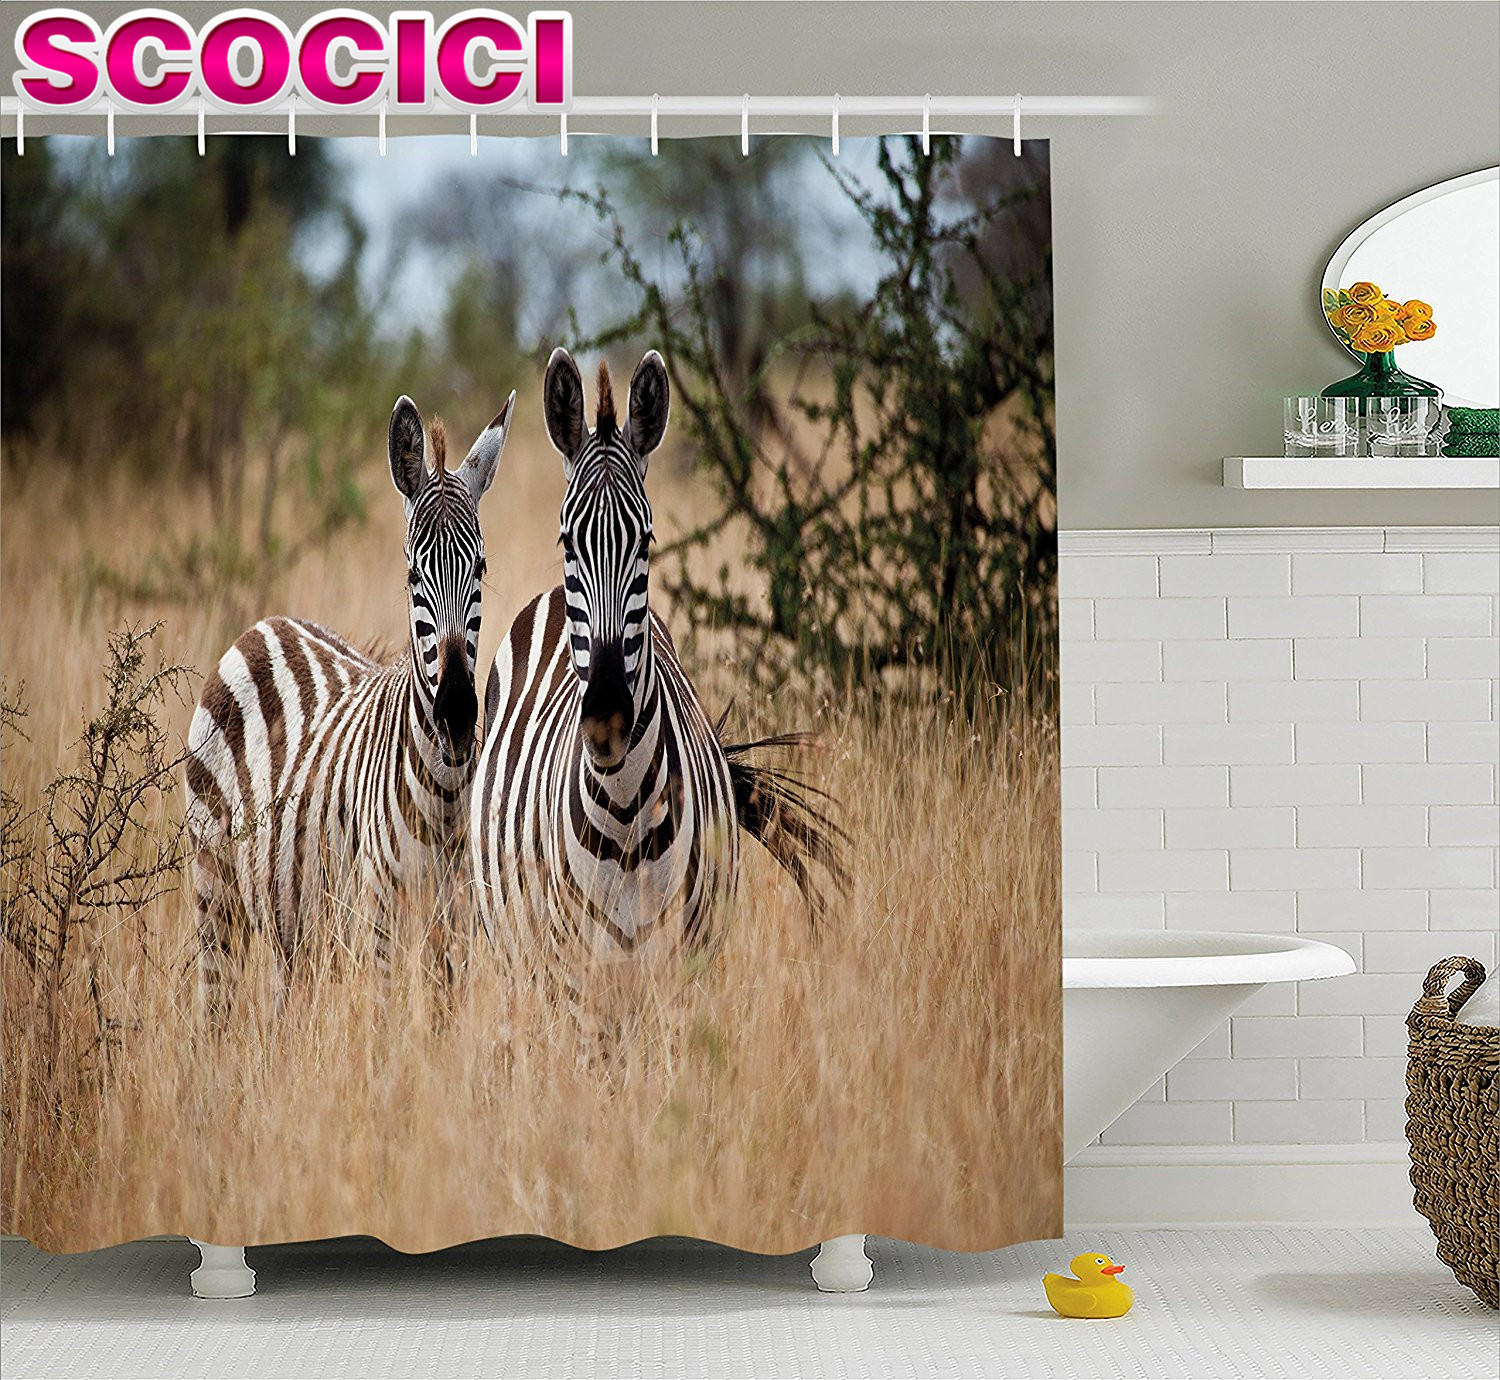 Wildlife Decor Shower Curtain Kenya With Zebras In The High Bushes Looking At The Camera Striped Unique Animal Fabric Bathroom D